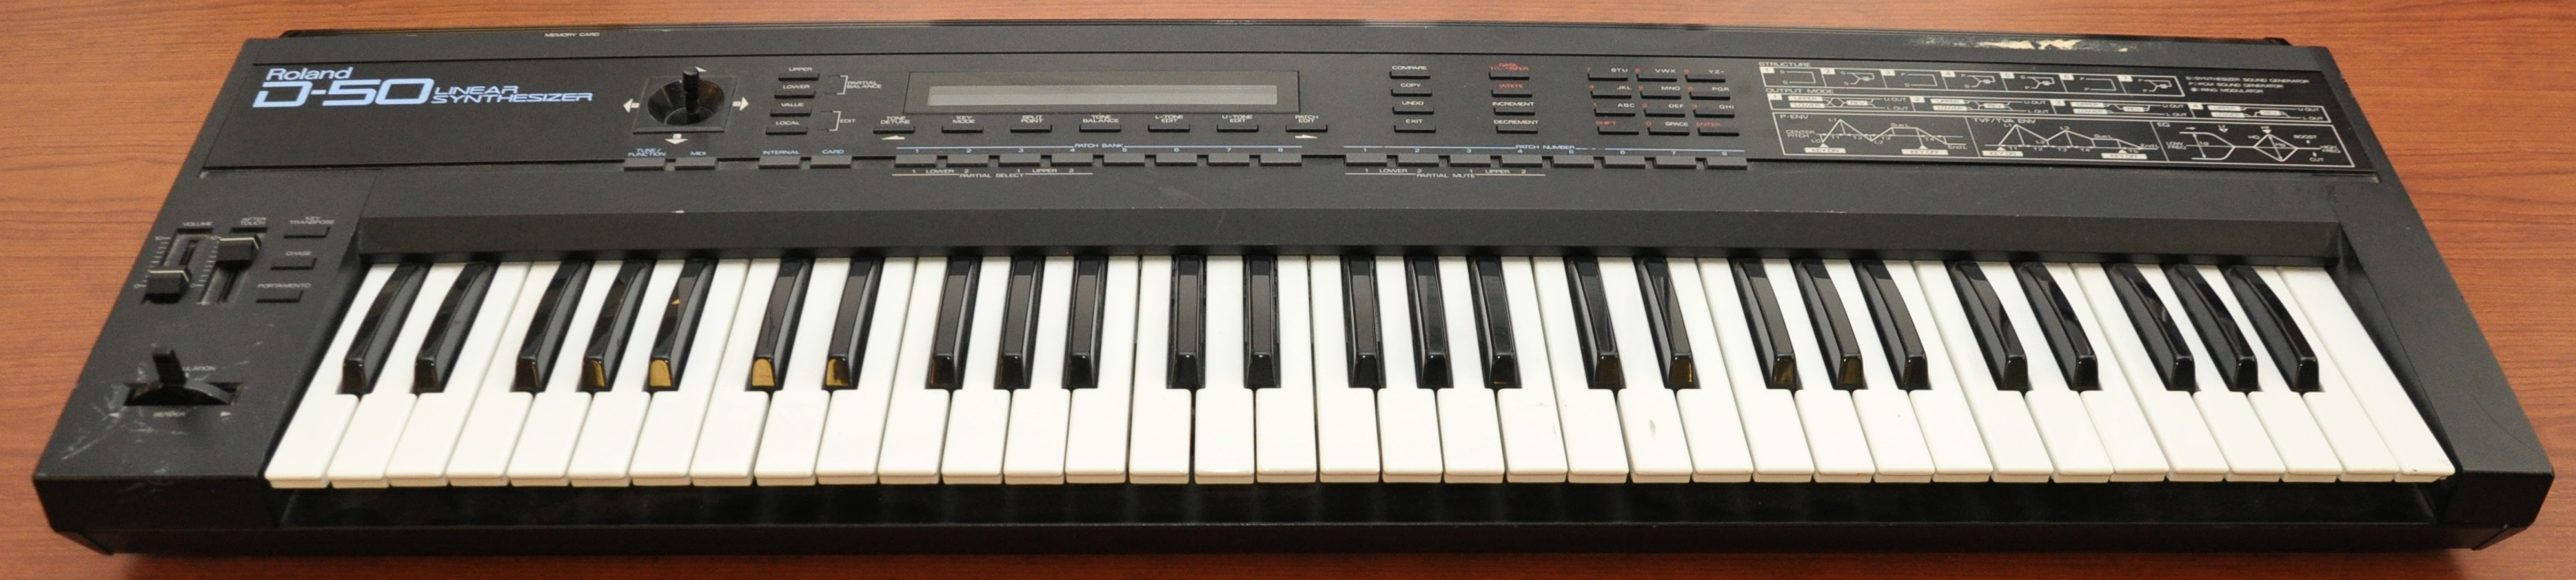 Music Software and Instruments | Library | University of Ottawa